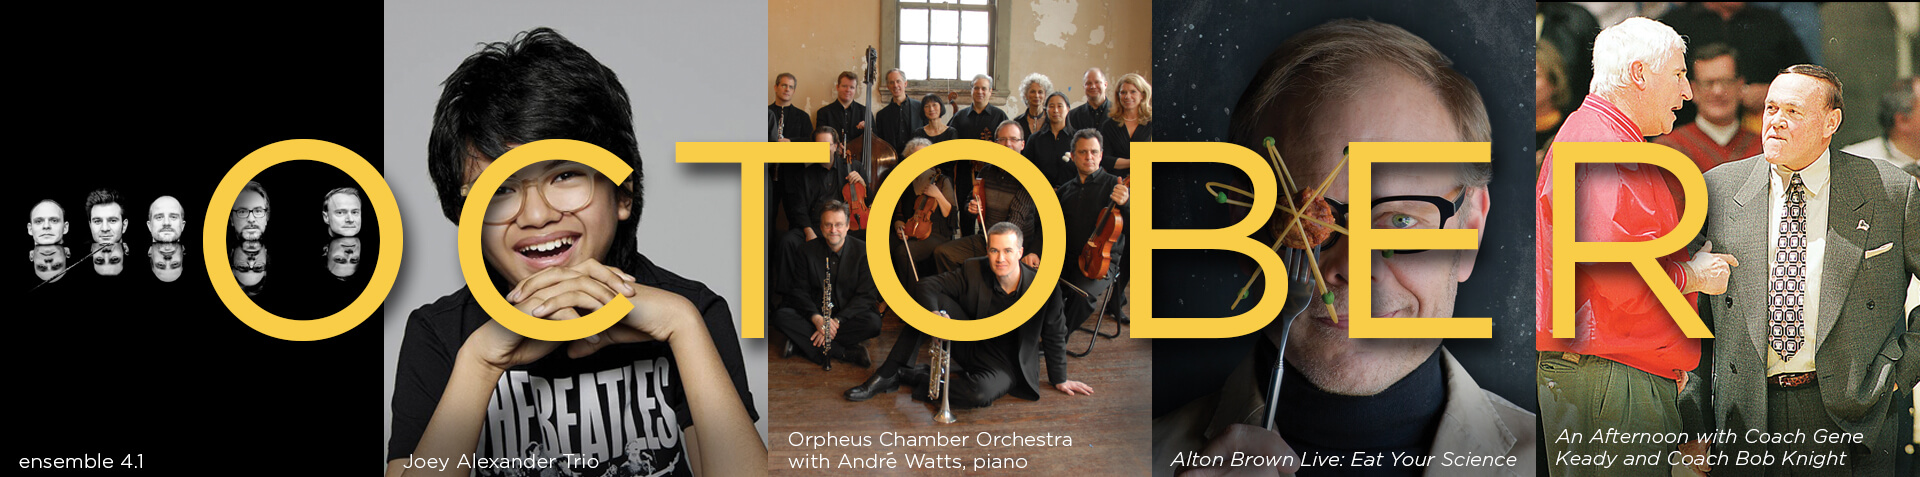 ensemble 4.1, Joey Alexander Trio, Orpheus Chamber Orchestra, Alton Brown Live, Coach Gene Keady and Coach Bob Knight